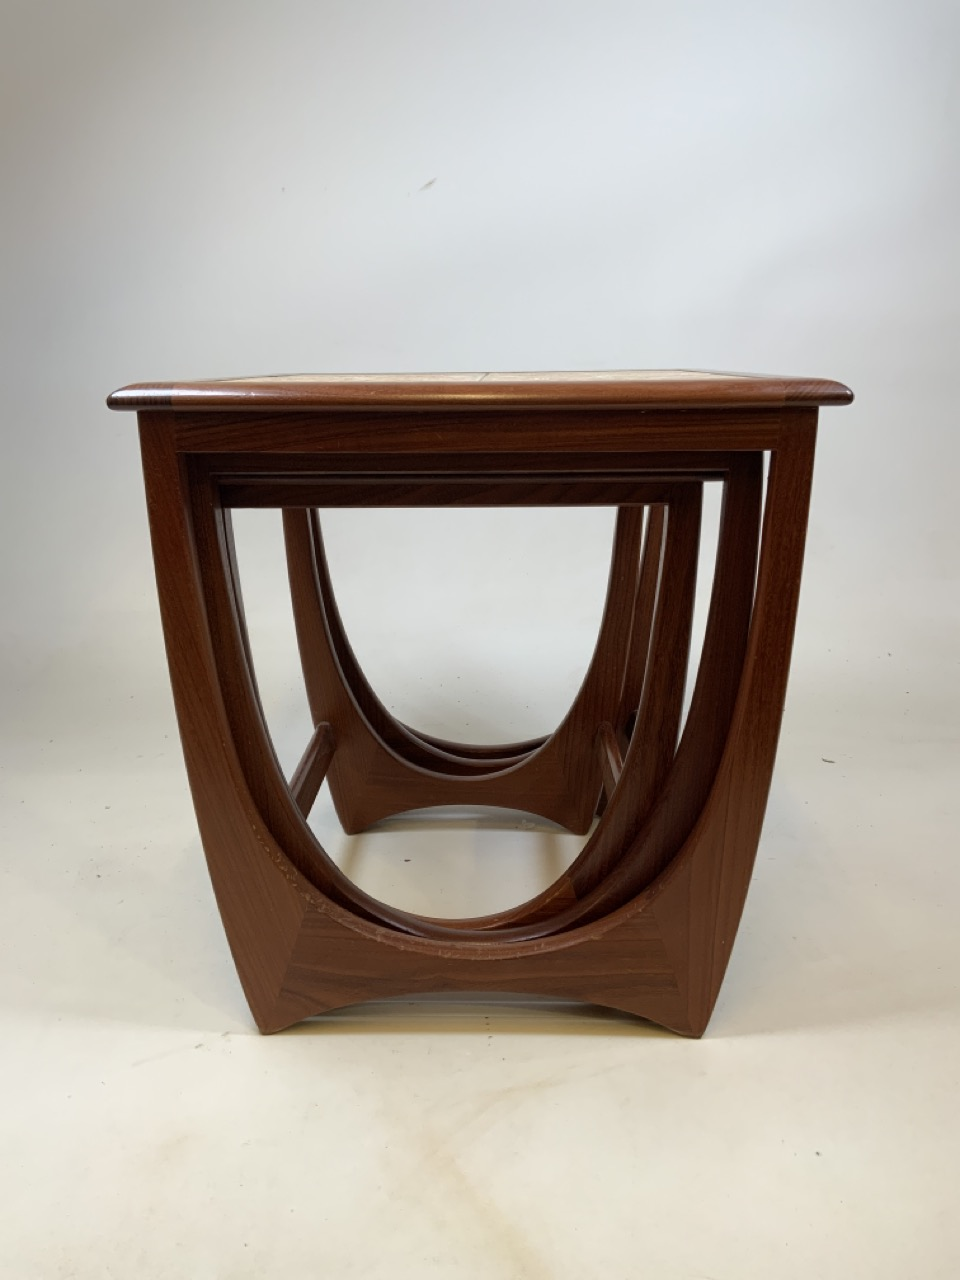 A G Plan mid century nest of three tables with tiled top table. W:50cm x D:50cm x H:51cm - Image 3 of 6